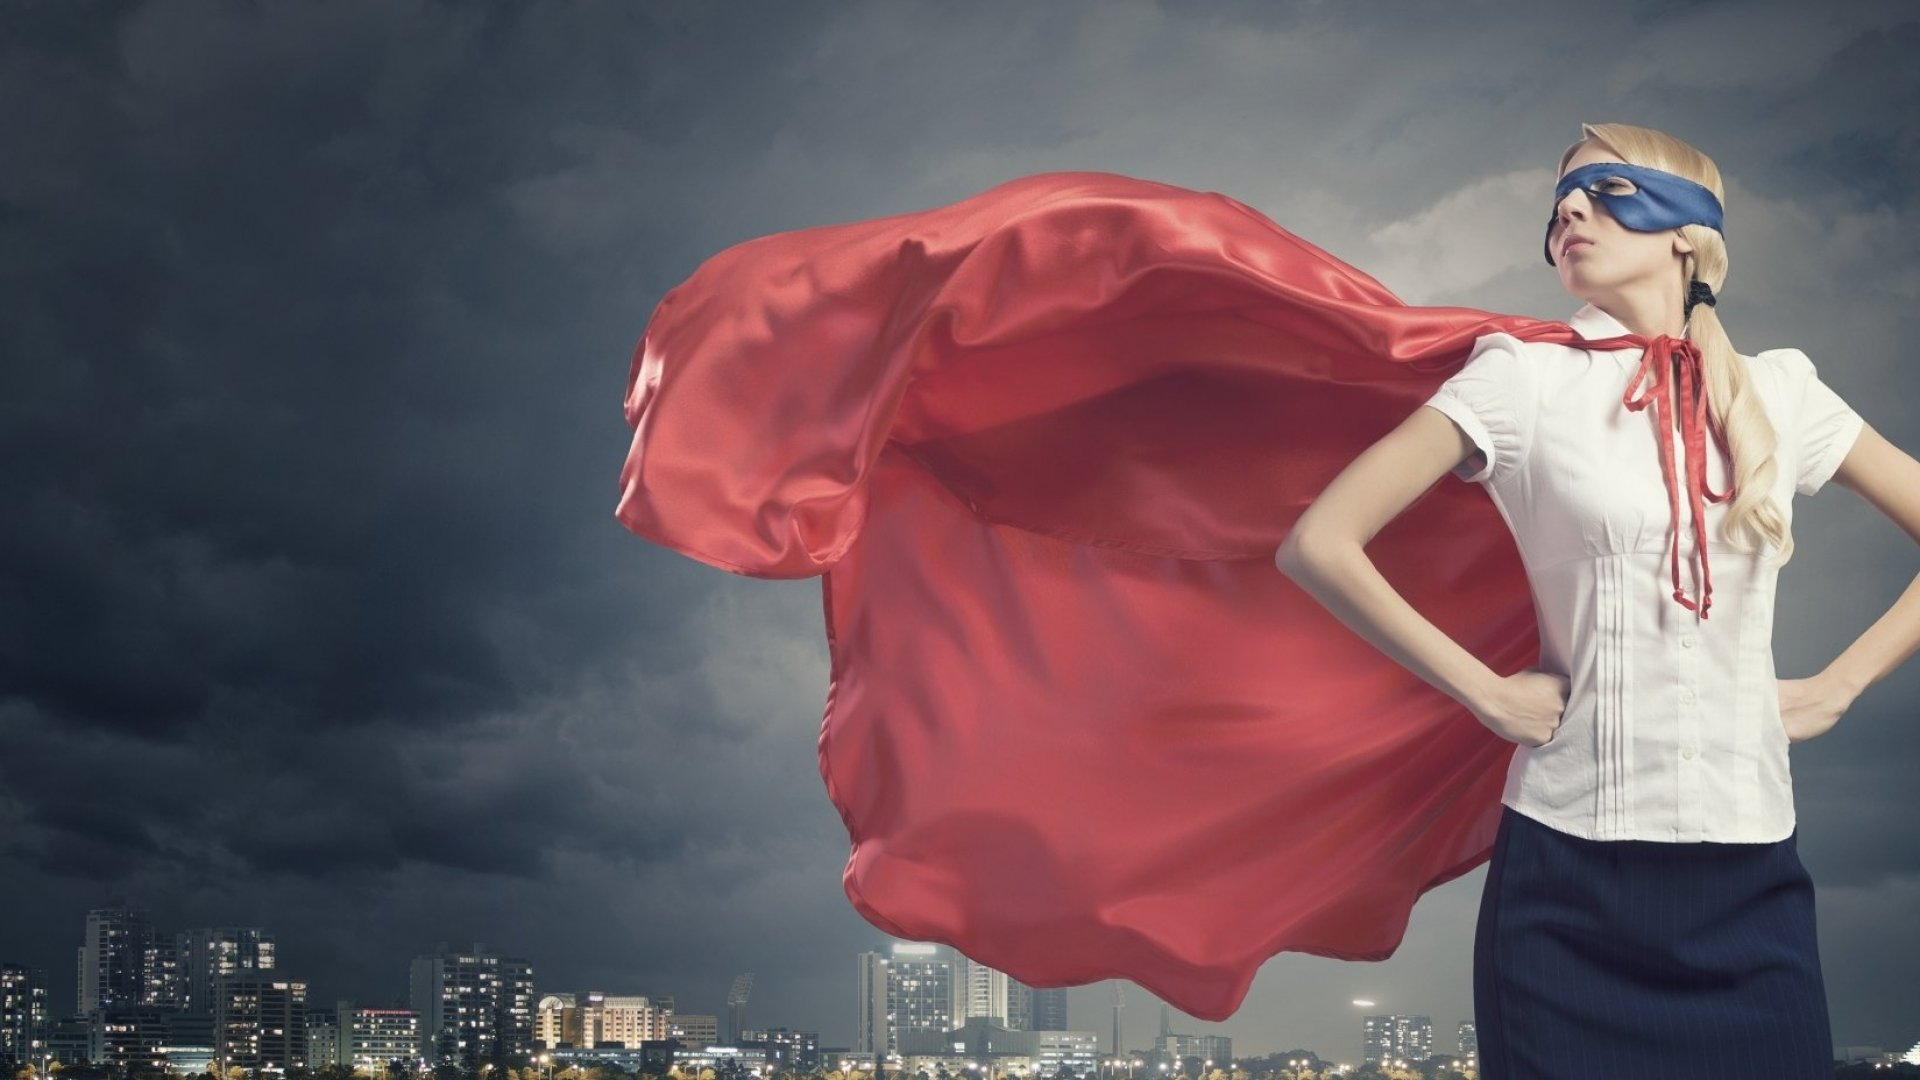 No More Faking It 'Til You Make It: 3 Remarkably Powerful Ways to Embody Confidence